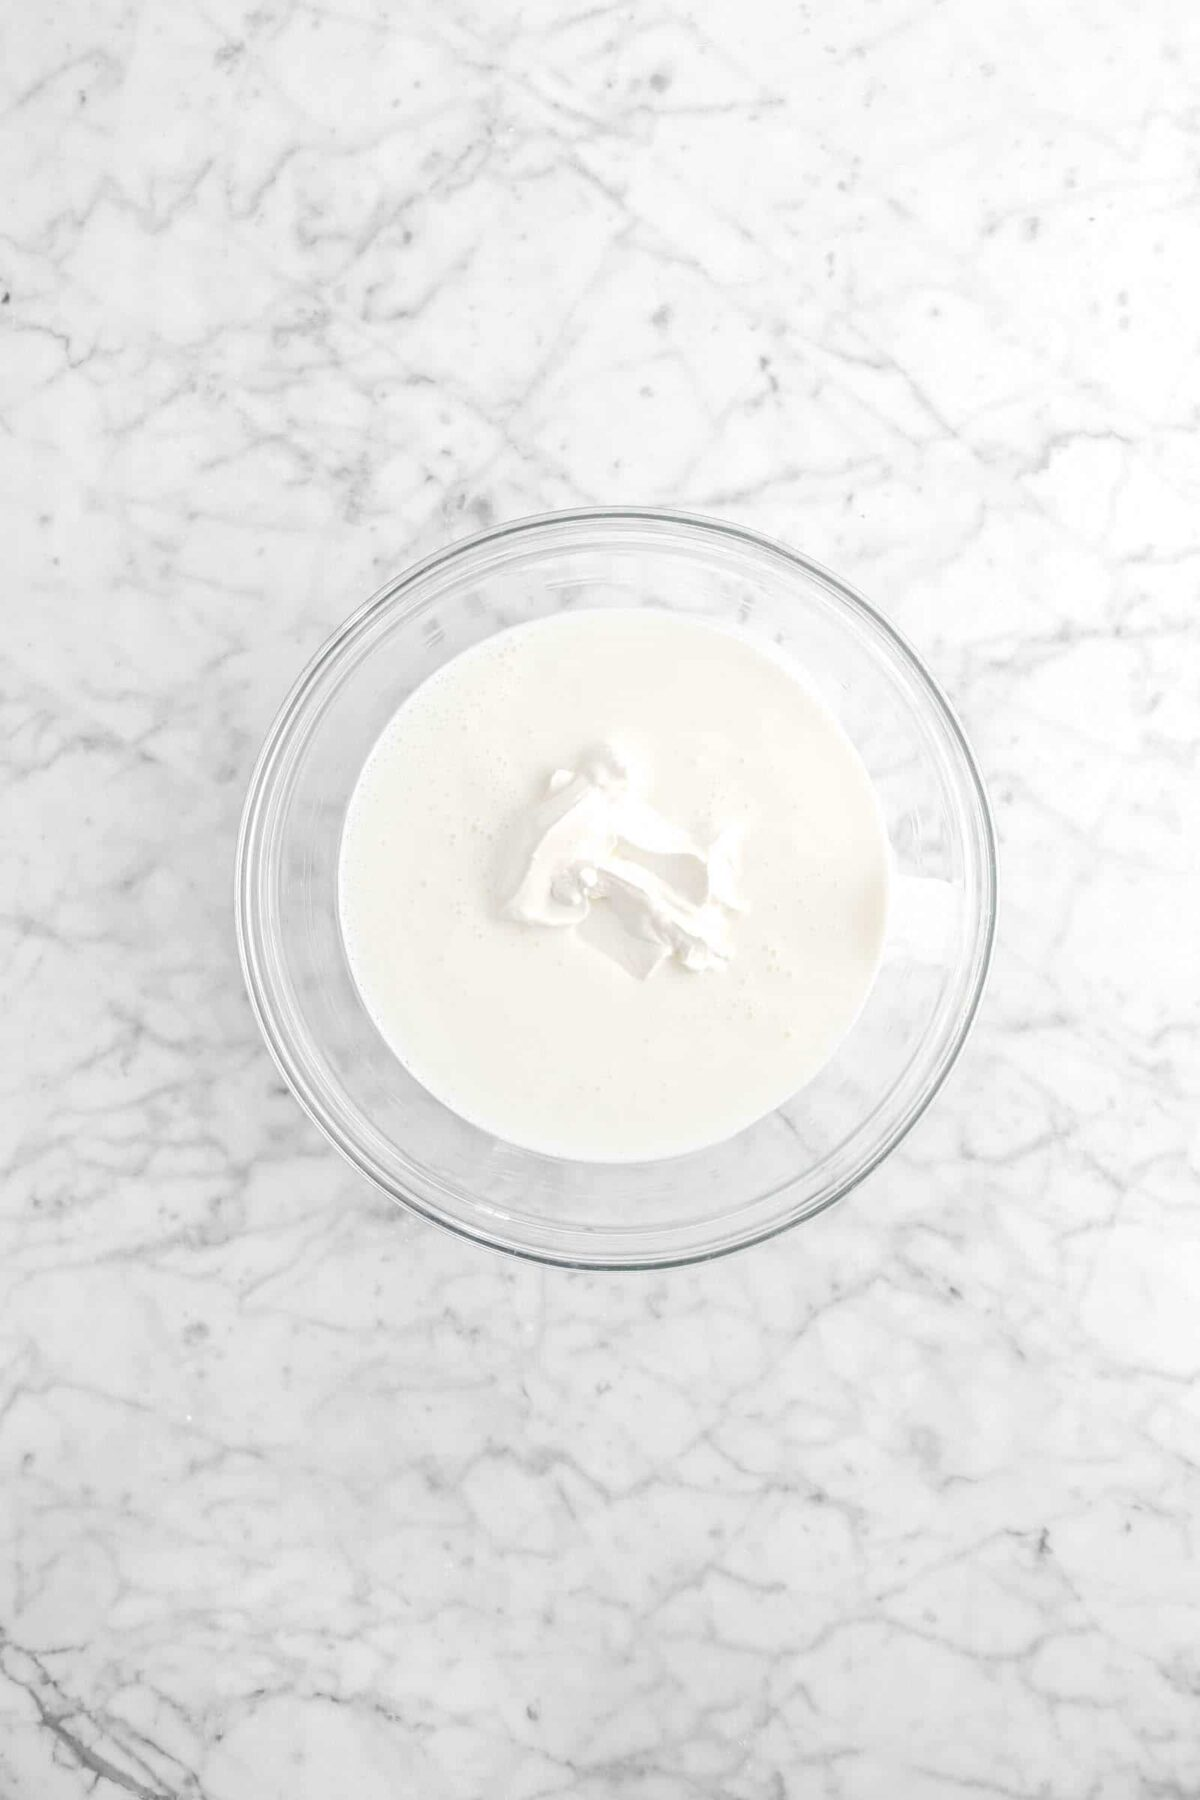 buttermilk and sour cream in a glass bowl